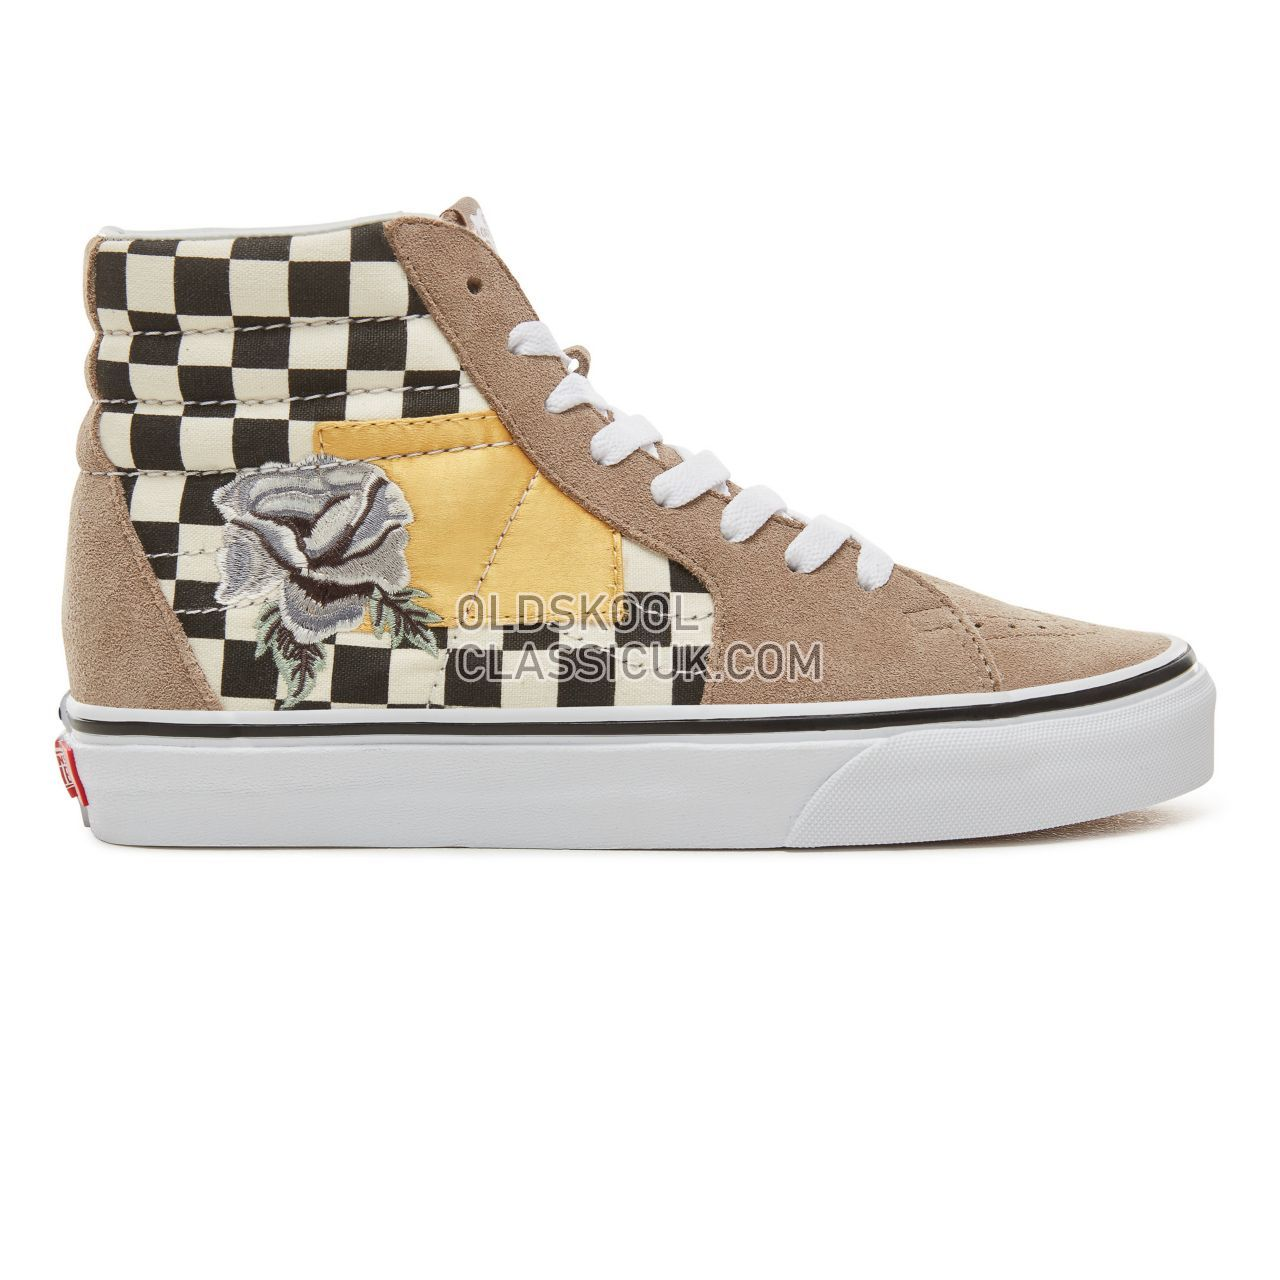 Vans Suede Satin Patchwork Sk8-Hi Sneakers Womens (Satin Patchwork) Checker/Black VA38GEUBK Shoes